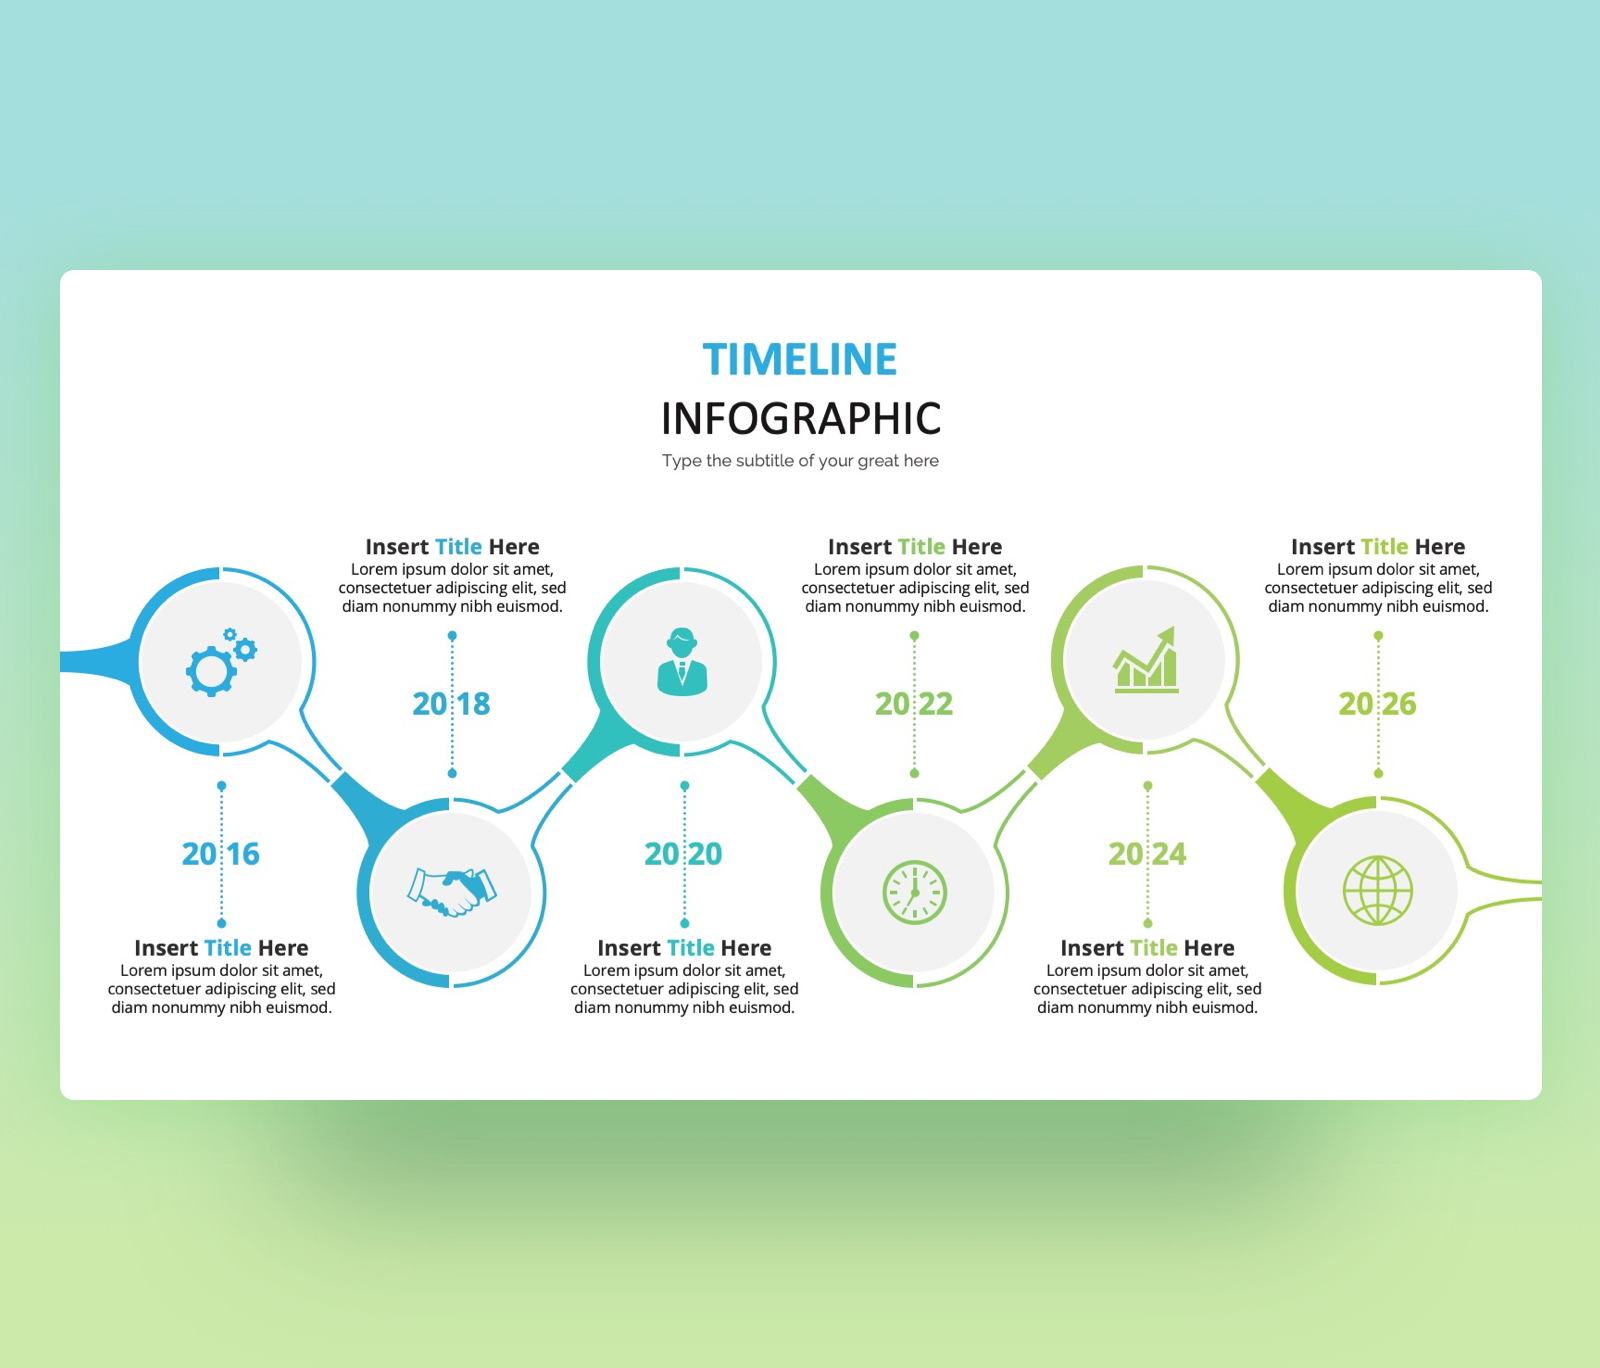 Timeline Infographic Template | Modern PPT Free Download